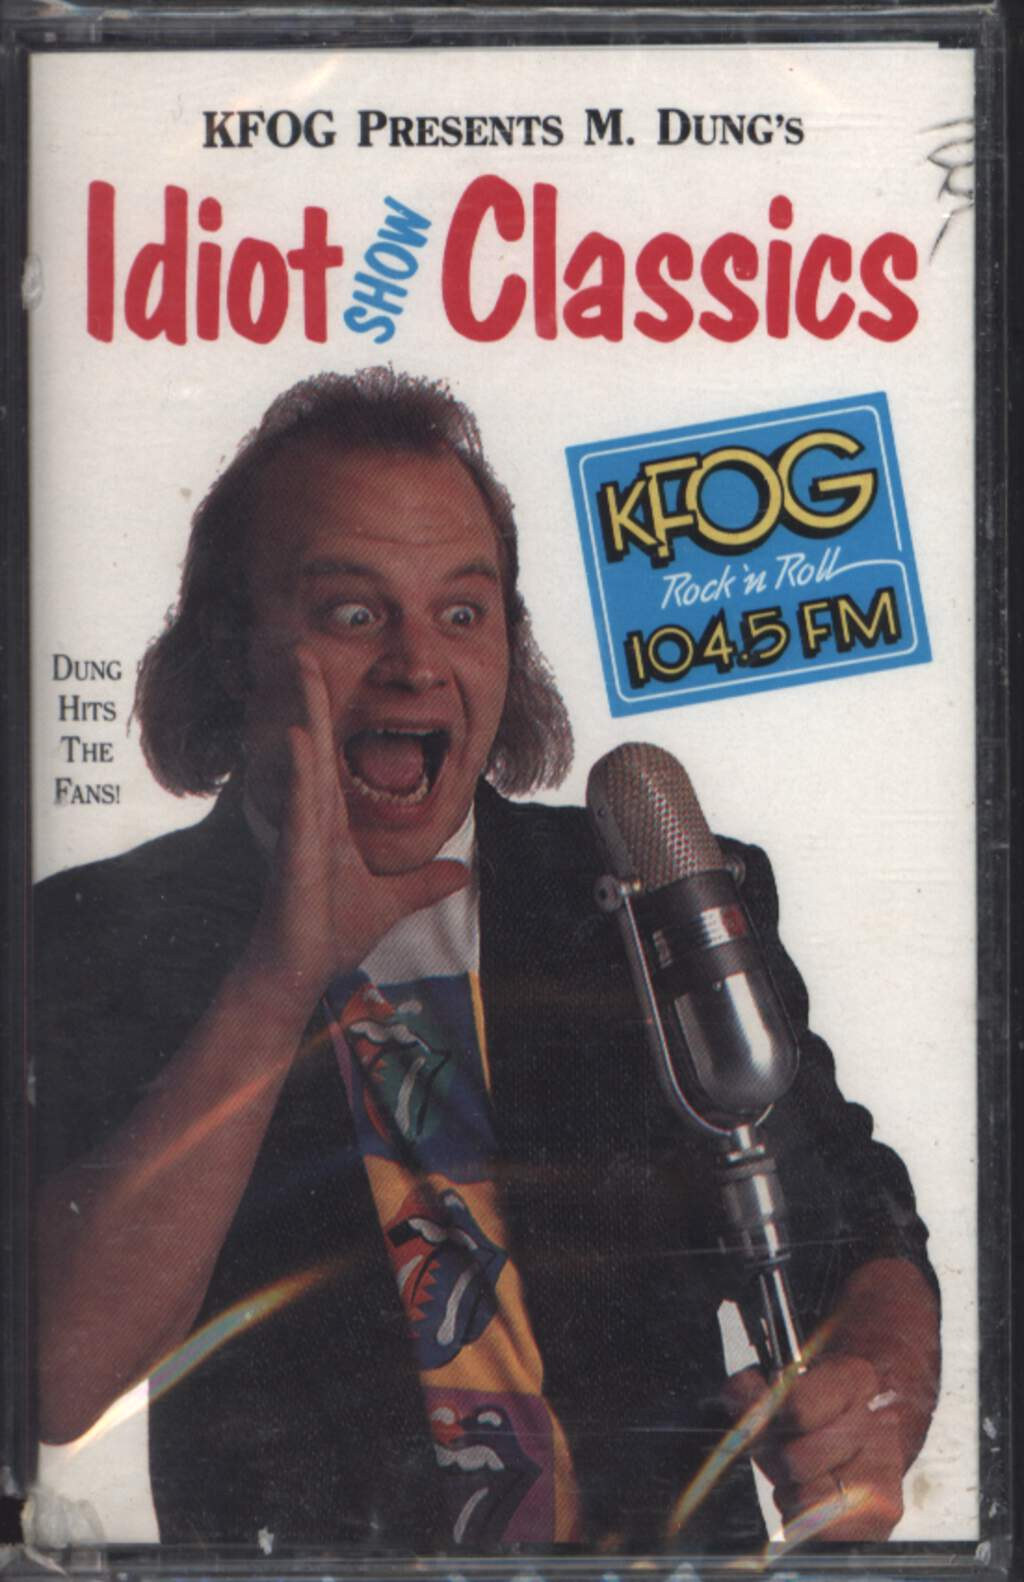 Various: KFOG Presents M. Dung's Idiot Show Classics, Compact Cassette